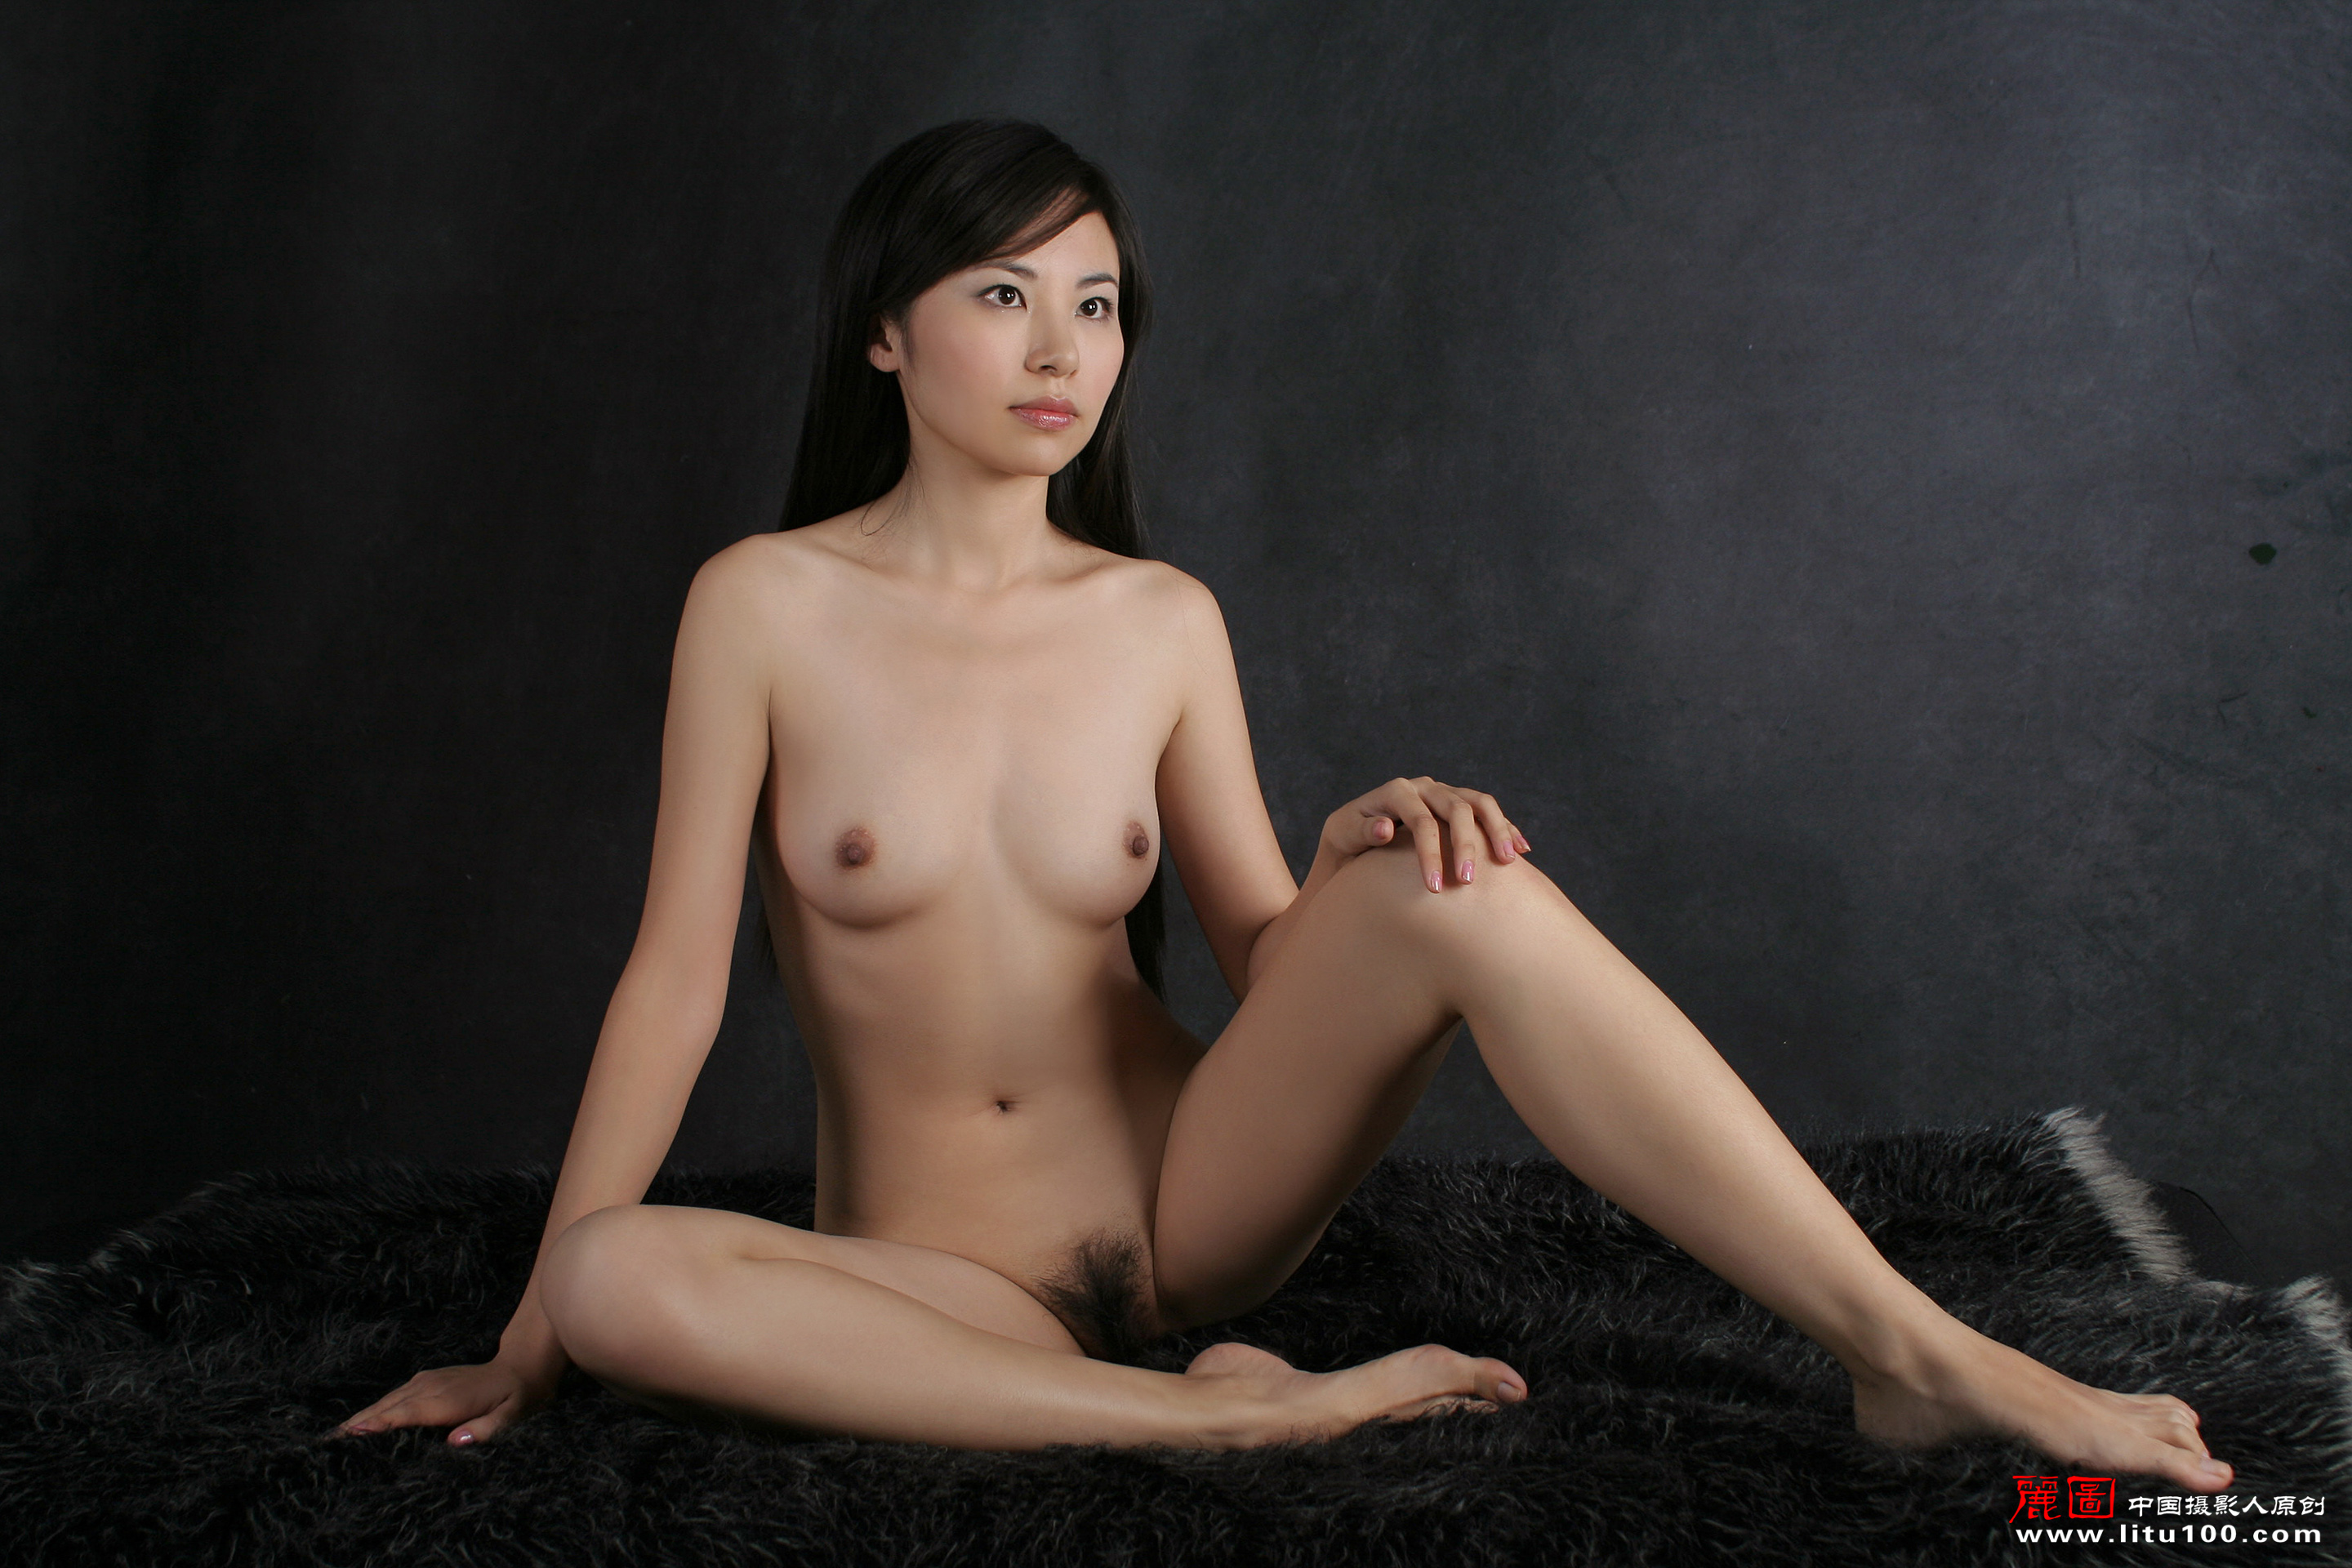 Hot Chinese Girls Pics Nude Art By Model